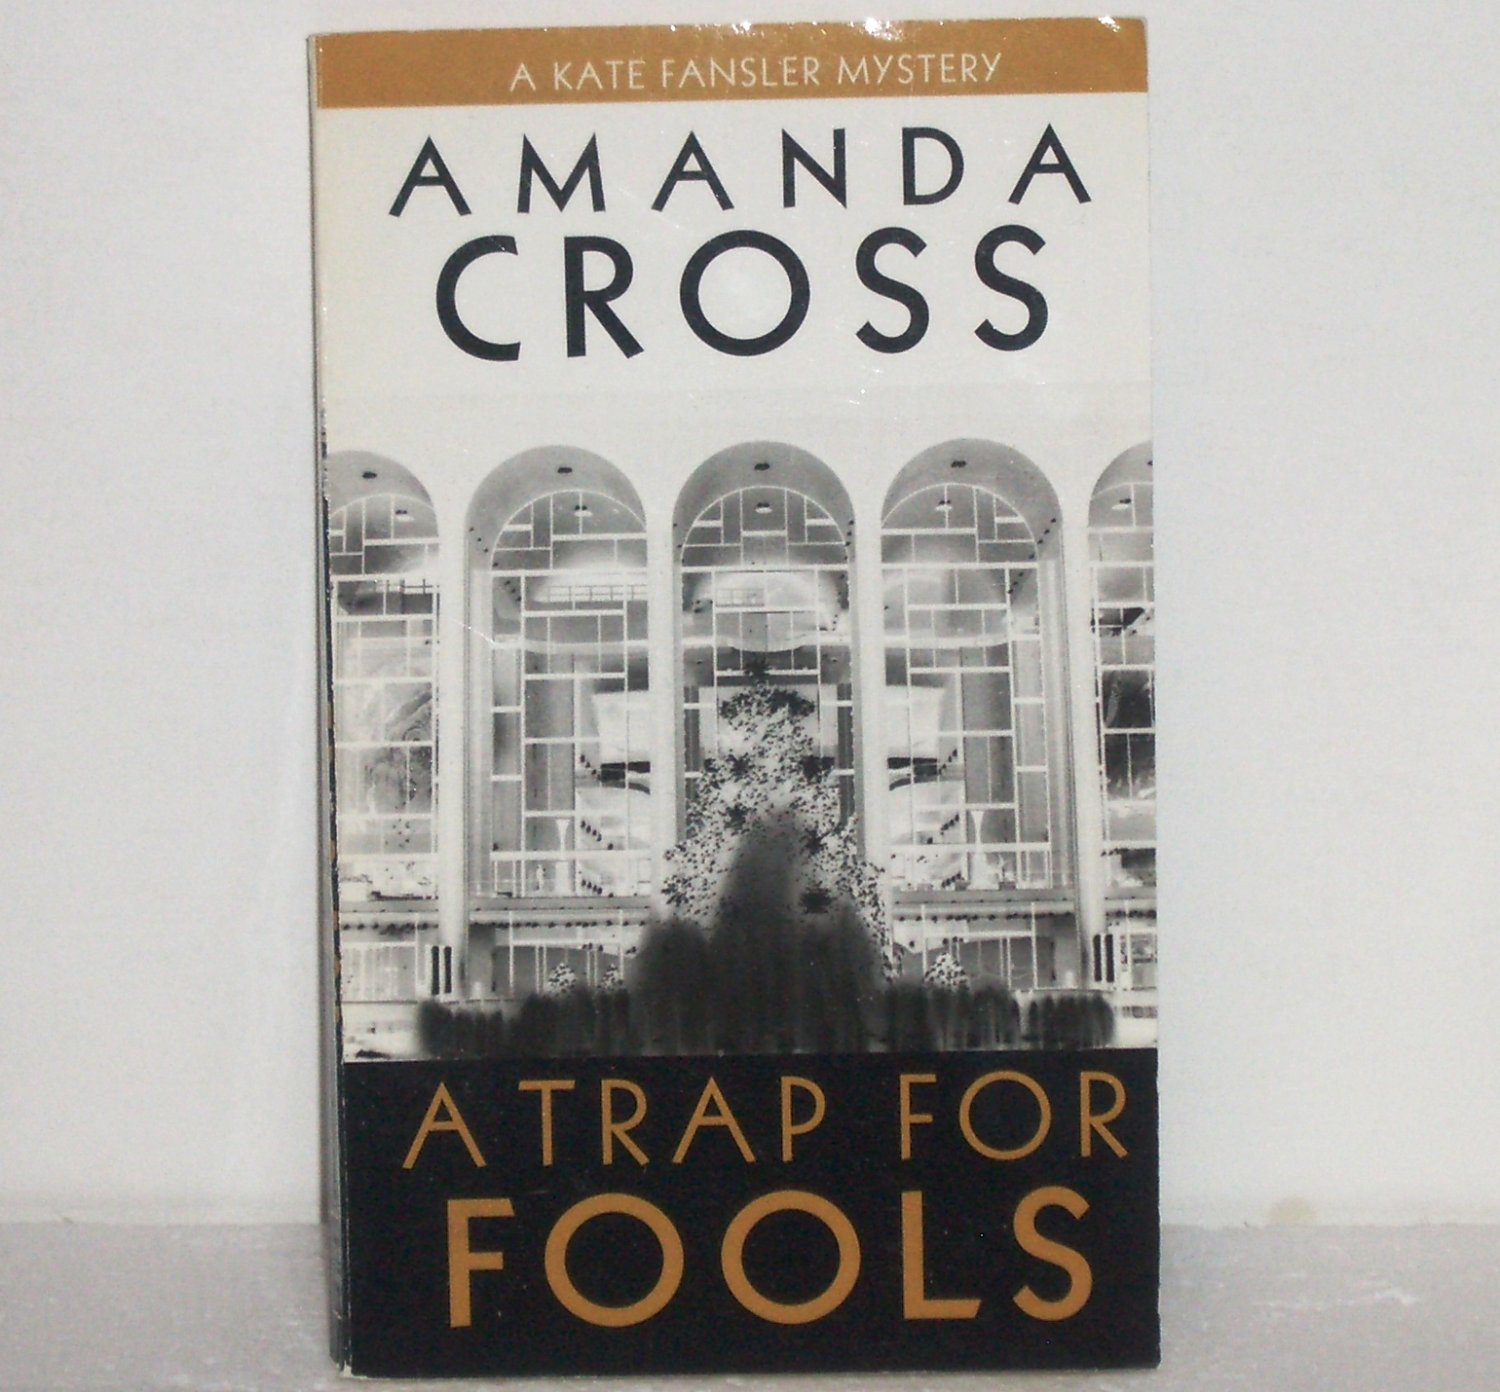 A Trap for Fools by Amanda Cross 1990 A Kate Fansler Cozy Mystery